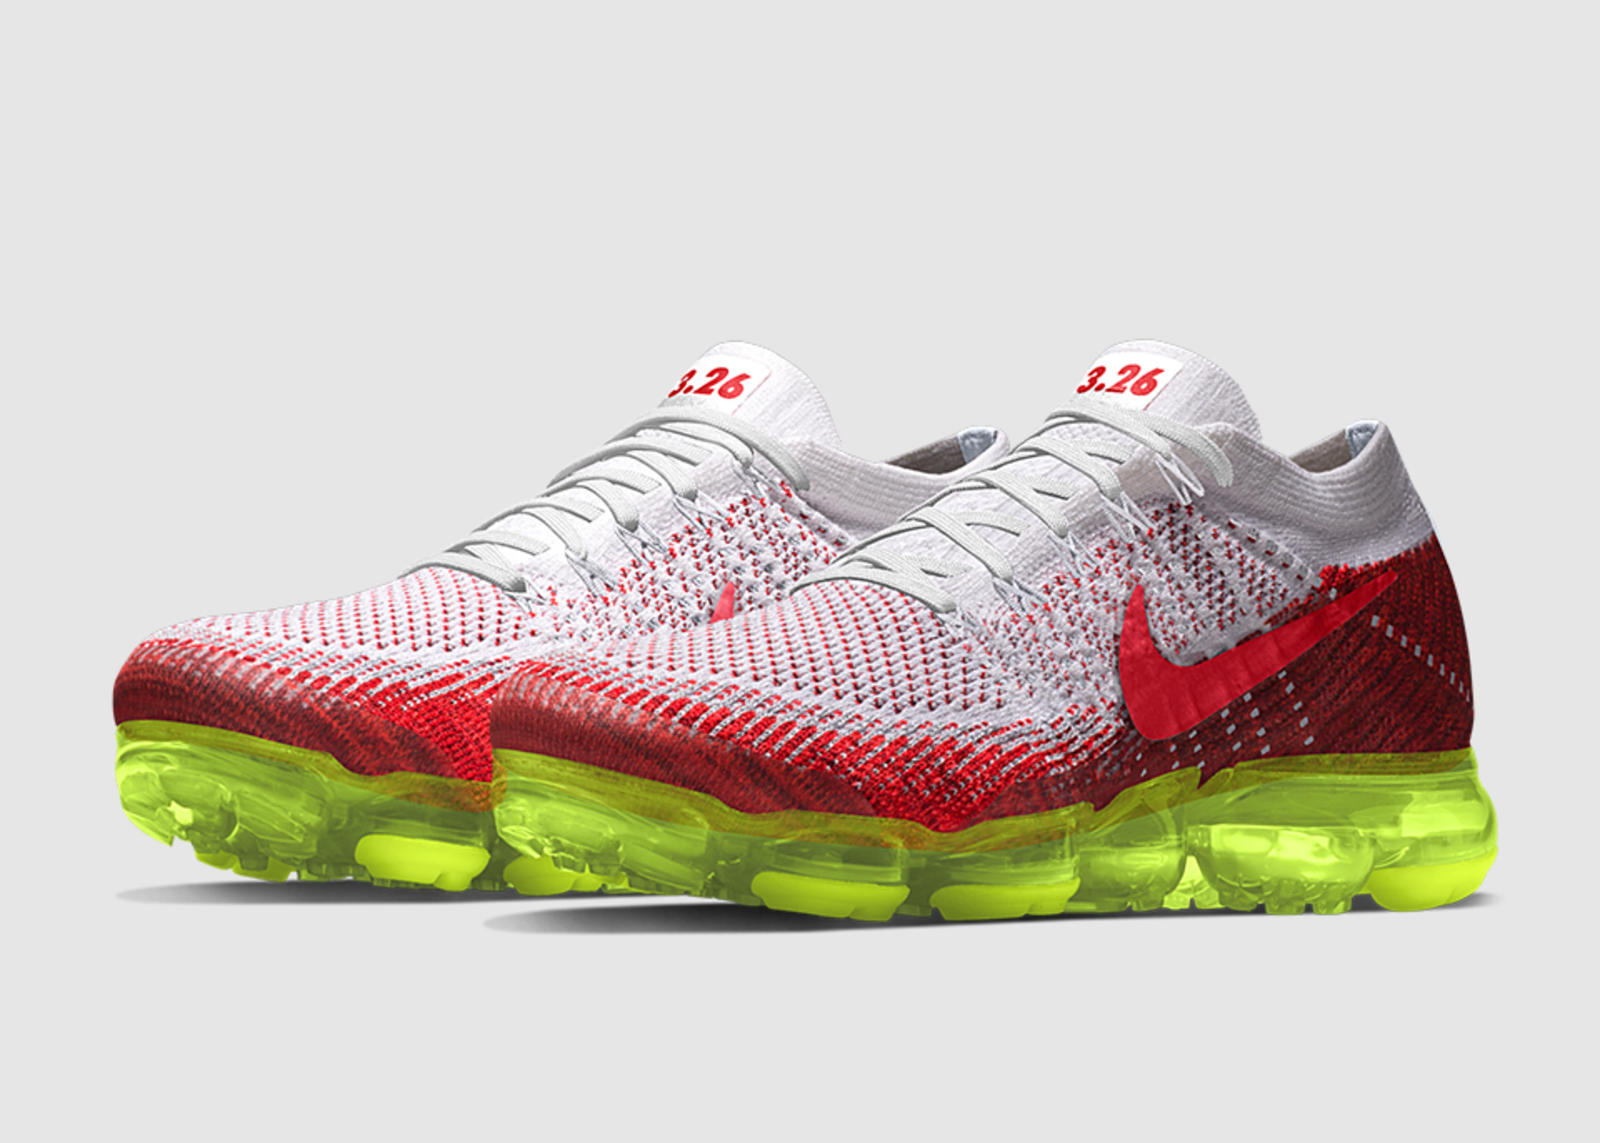 ab9b6ebd260 The NikeID Air Max Day 2017 drops will be available on March 26 at select Air  Max Day events and online.